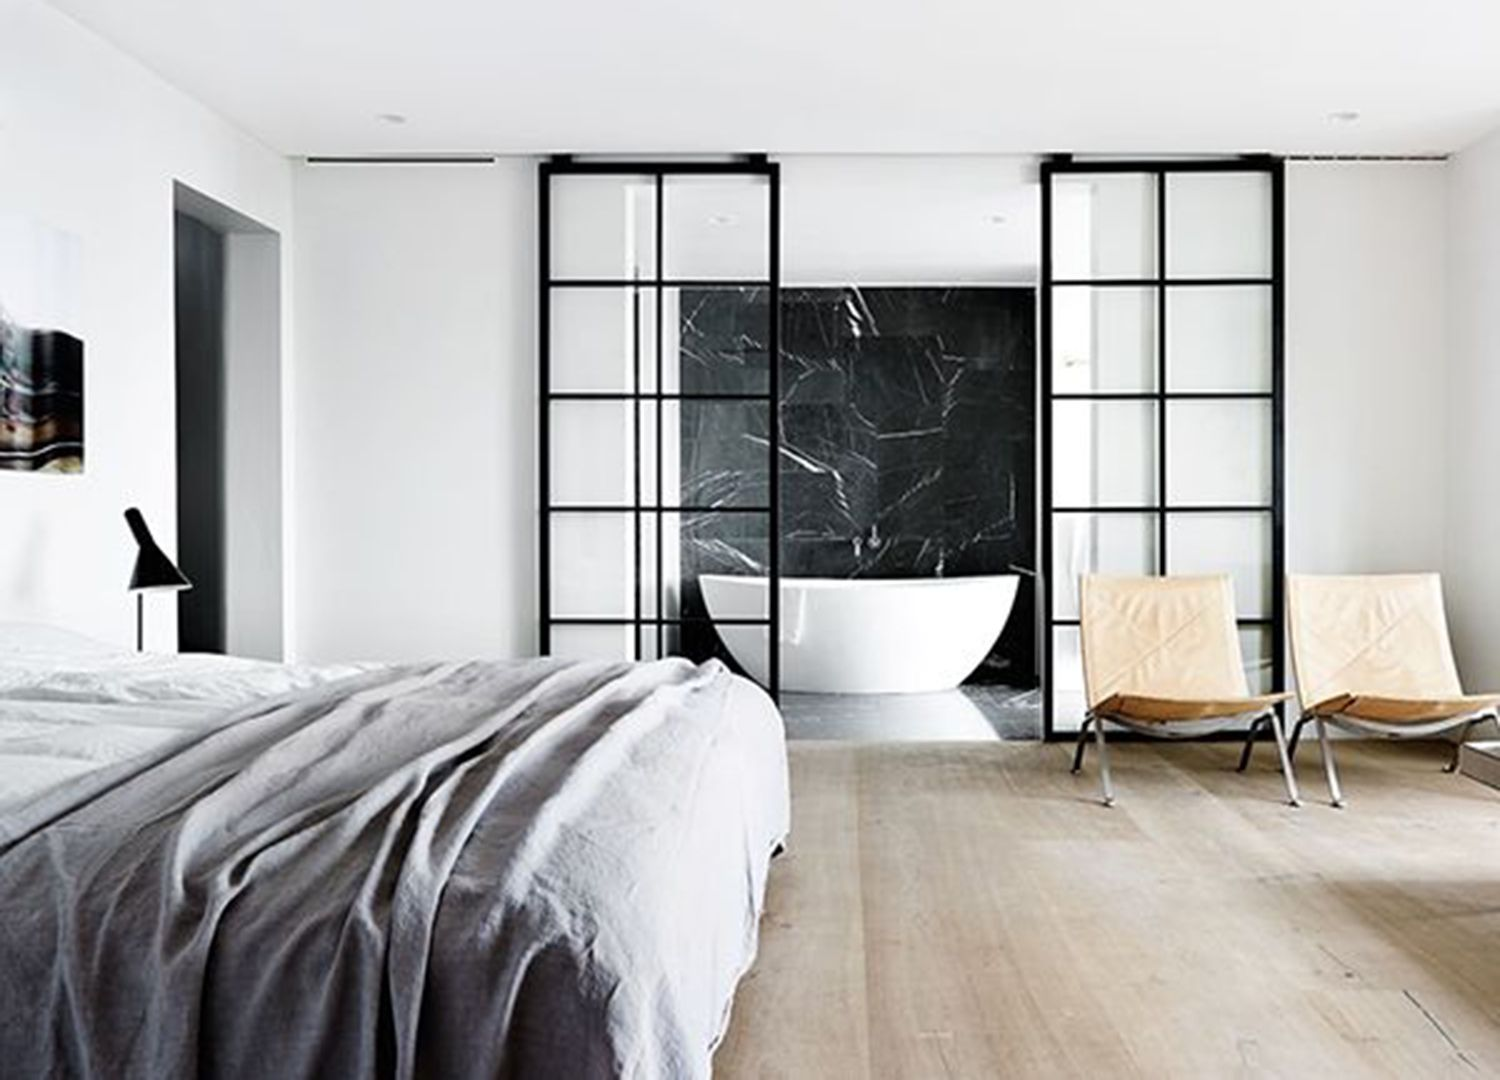 Incredible Open Bathroom Concept for Master Bedroom featured image